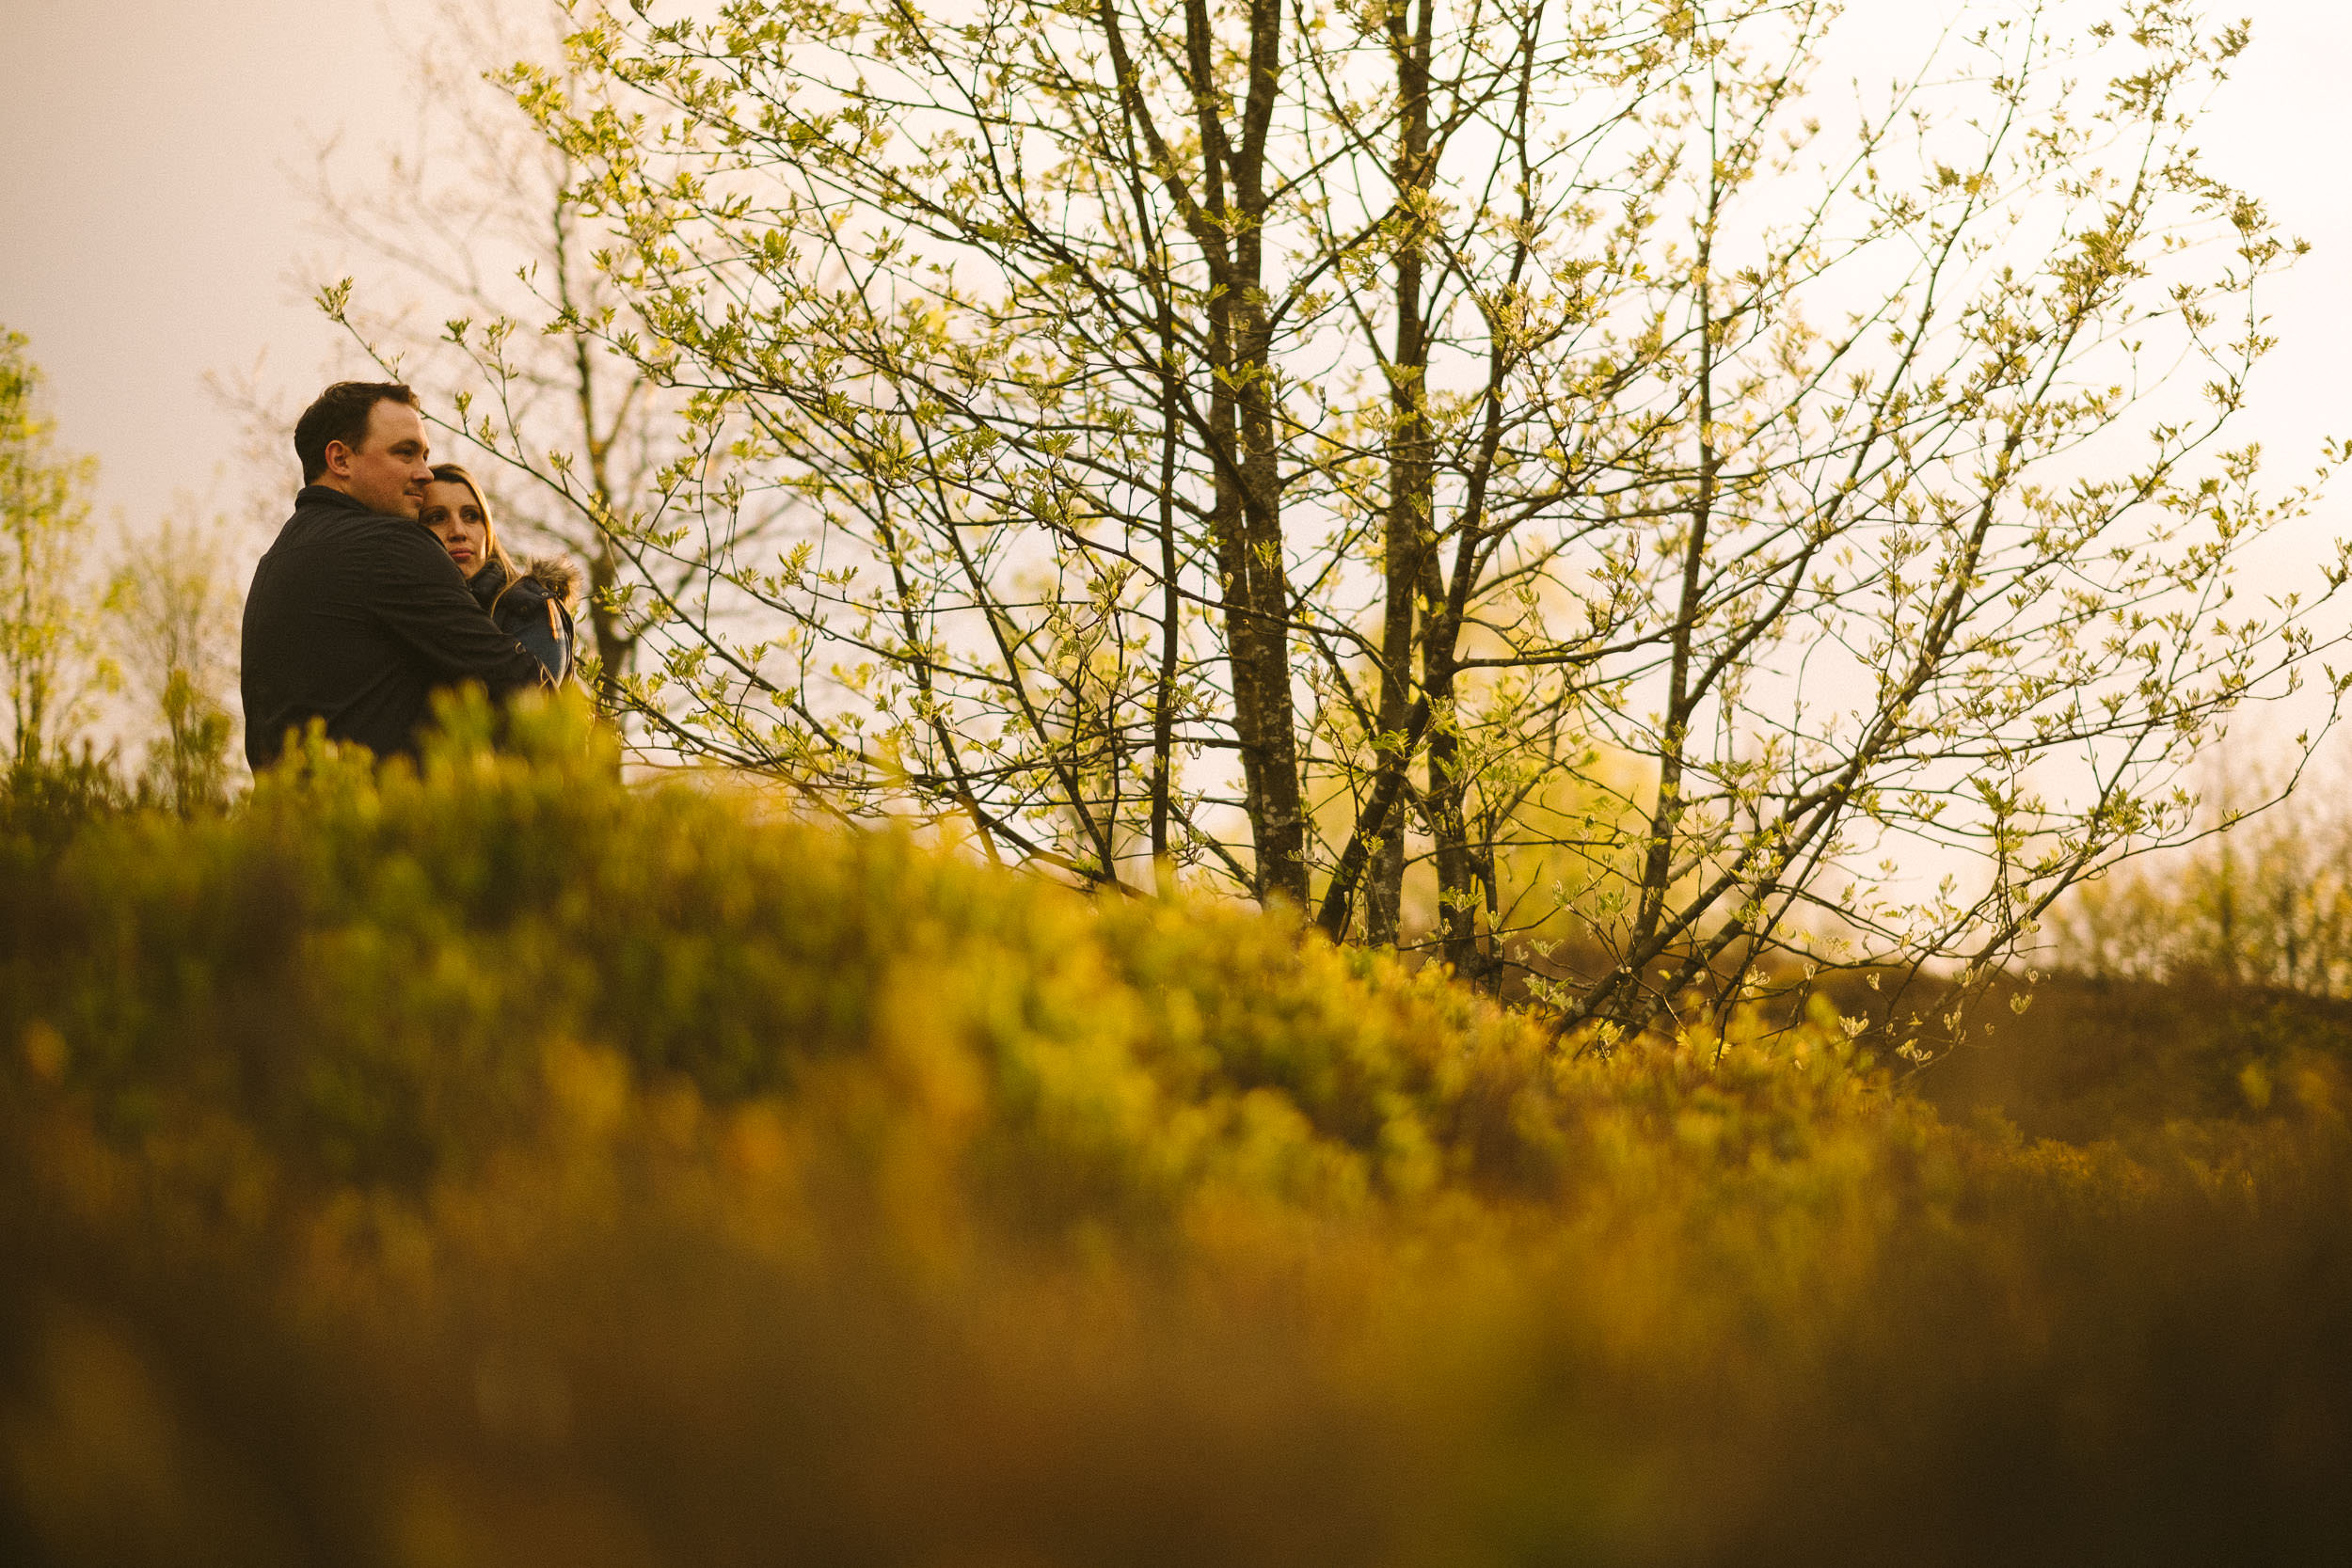 Couple embrace in warm light washing over green vegetation